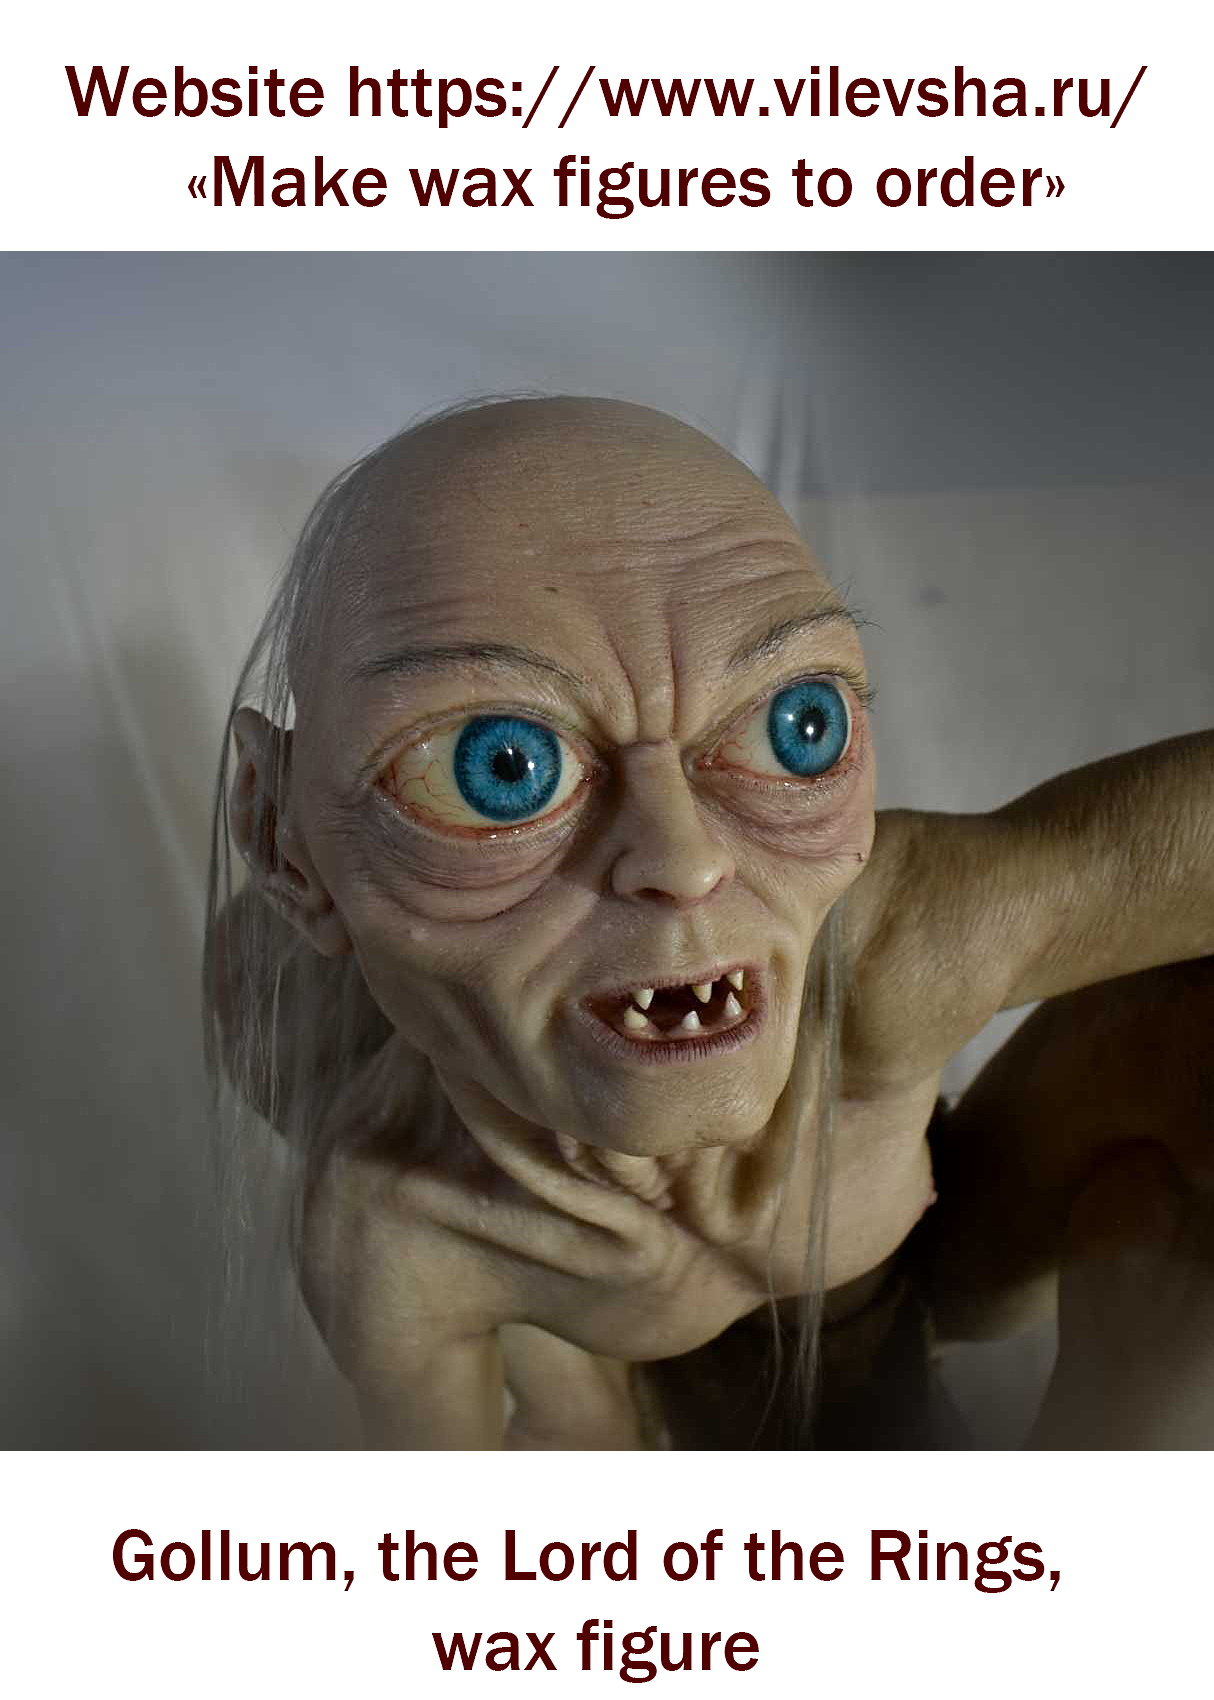 Gollum, the Lord of the Rings, wax figure